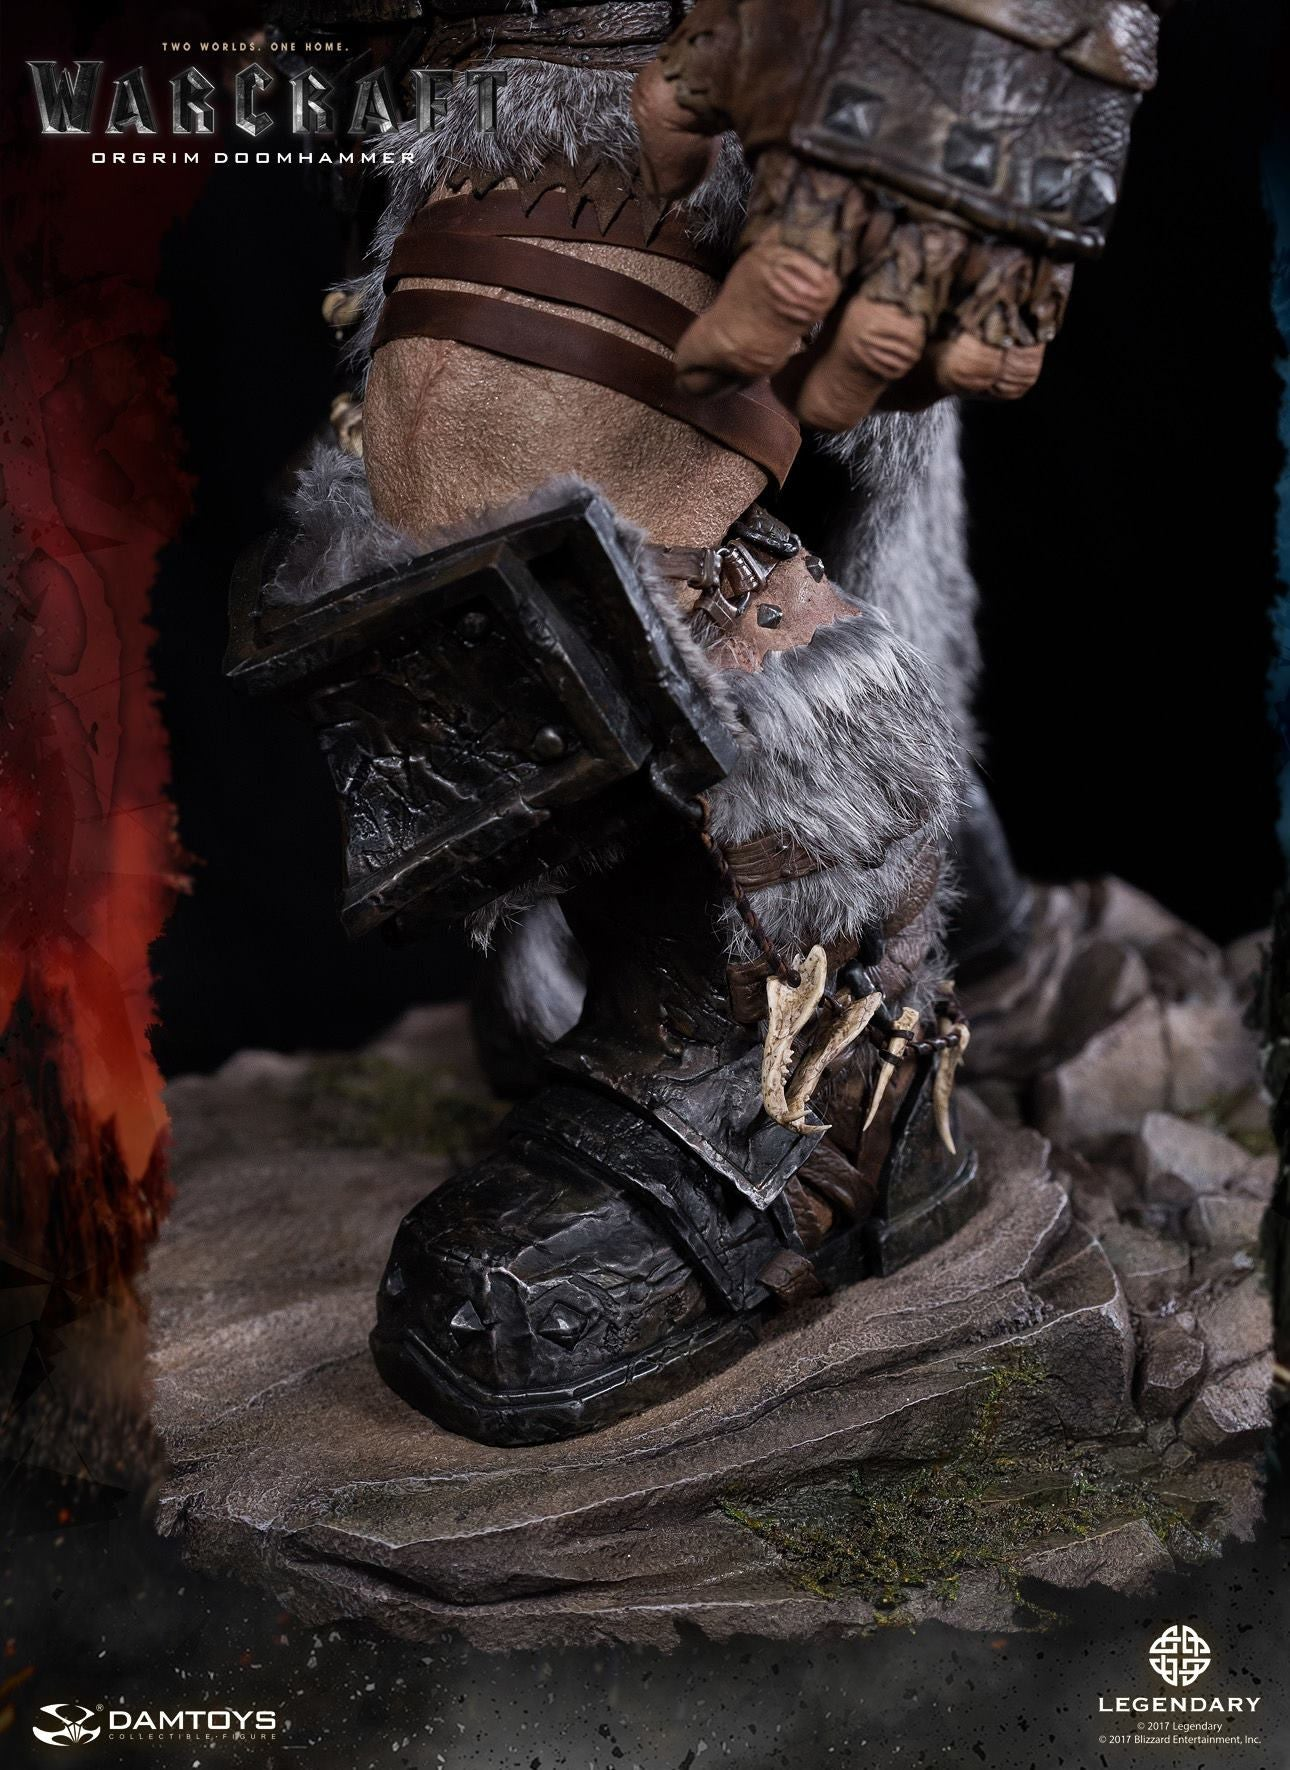 Dam Toys - DMLW02 - Epic Series - Warcraft - Orgrim Doomhammer Premium Statue - Marvelous Toys - 6